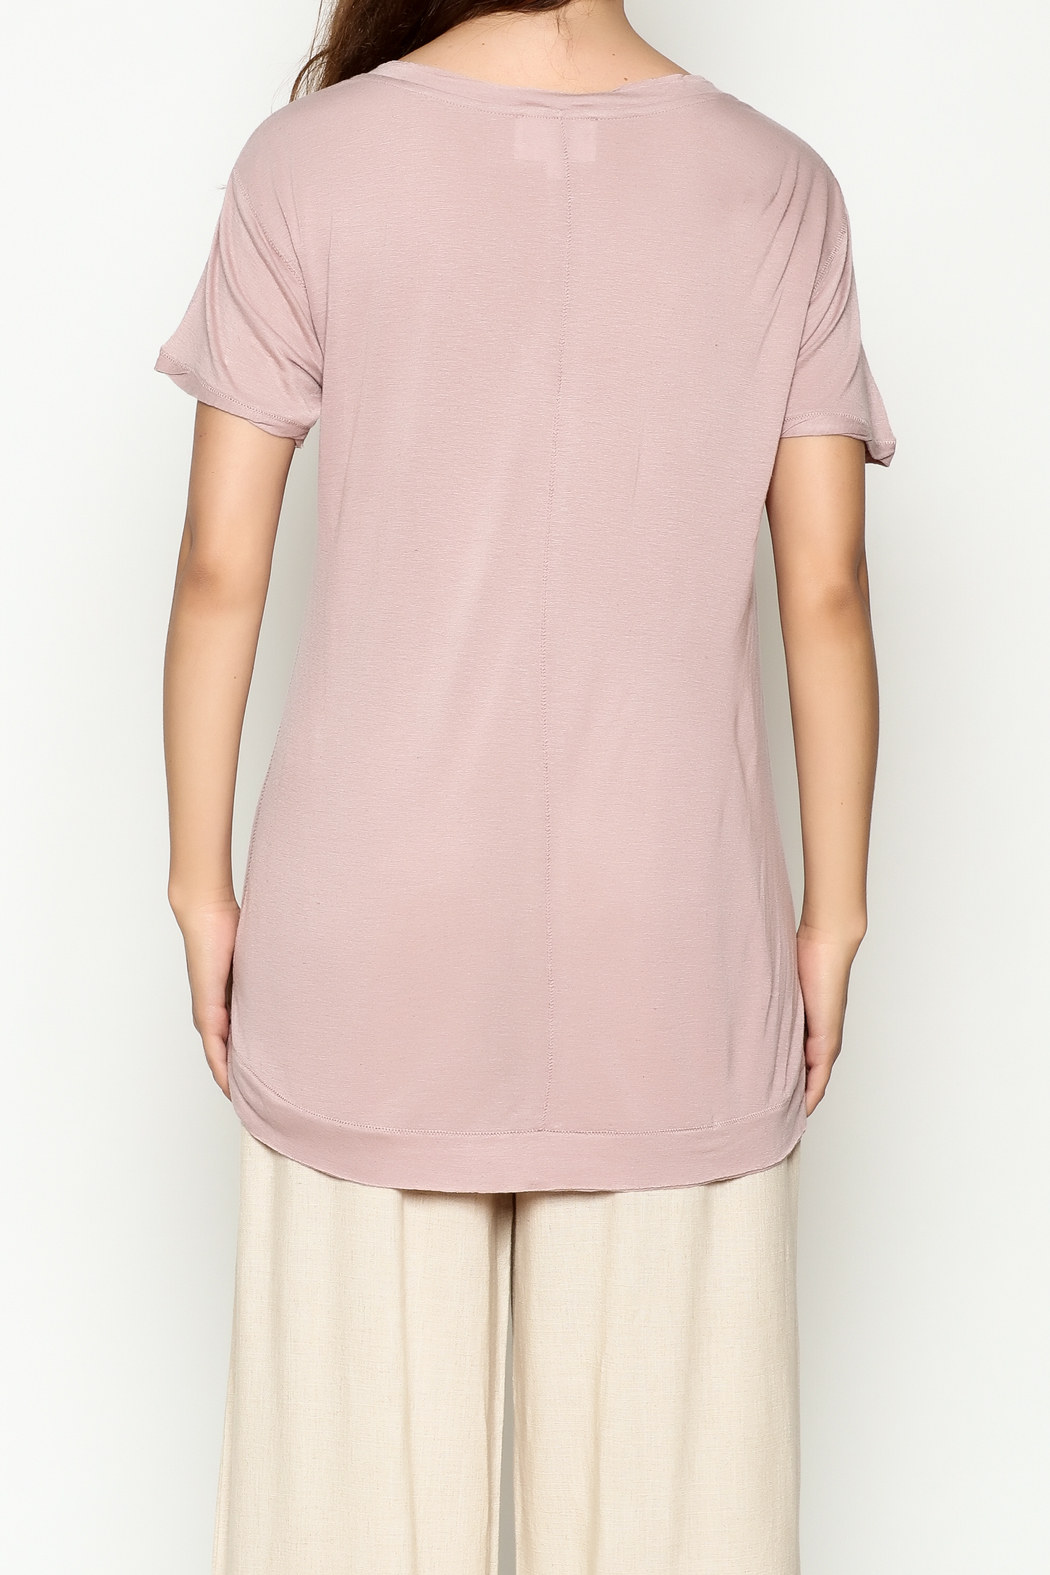 Olive & Oak Mauve V Neck Top - Back Cropped Image